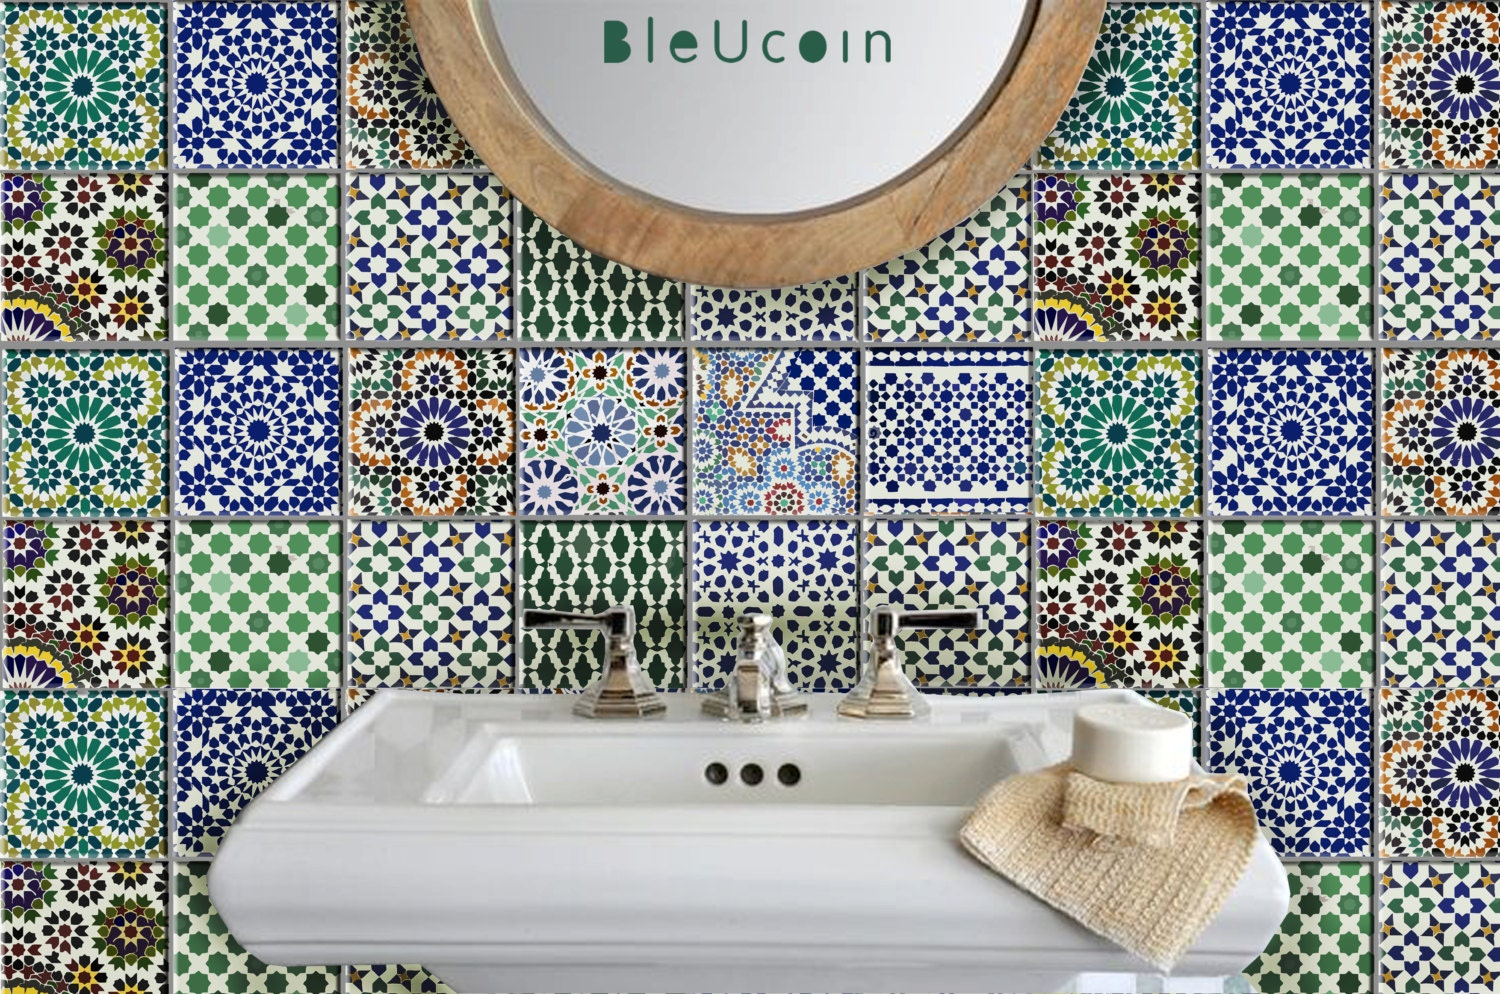 Moroccan Tile/Wall/ Floor Decal : Kitchen/ Bathroom/ Indoor